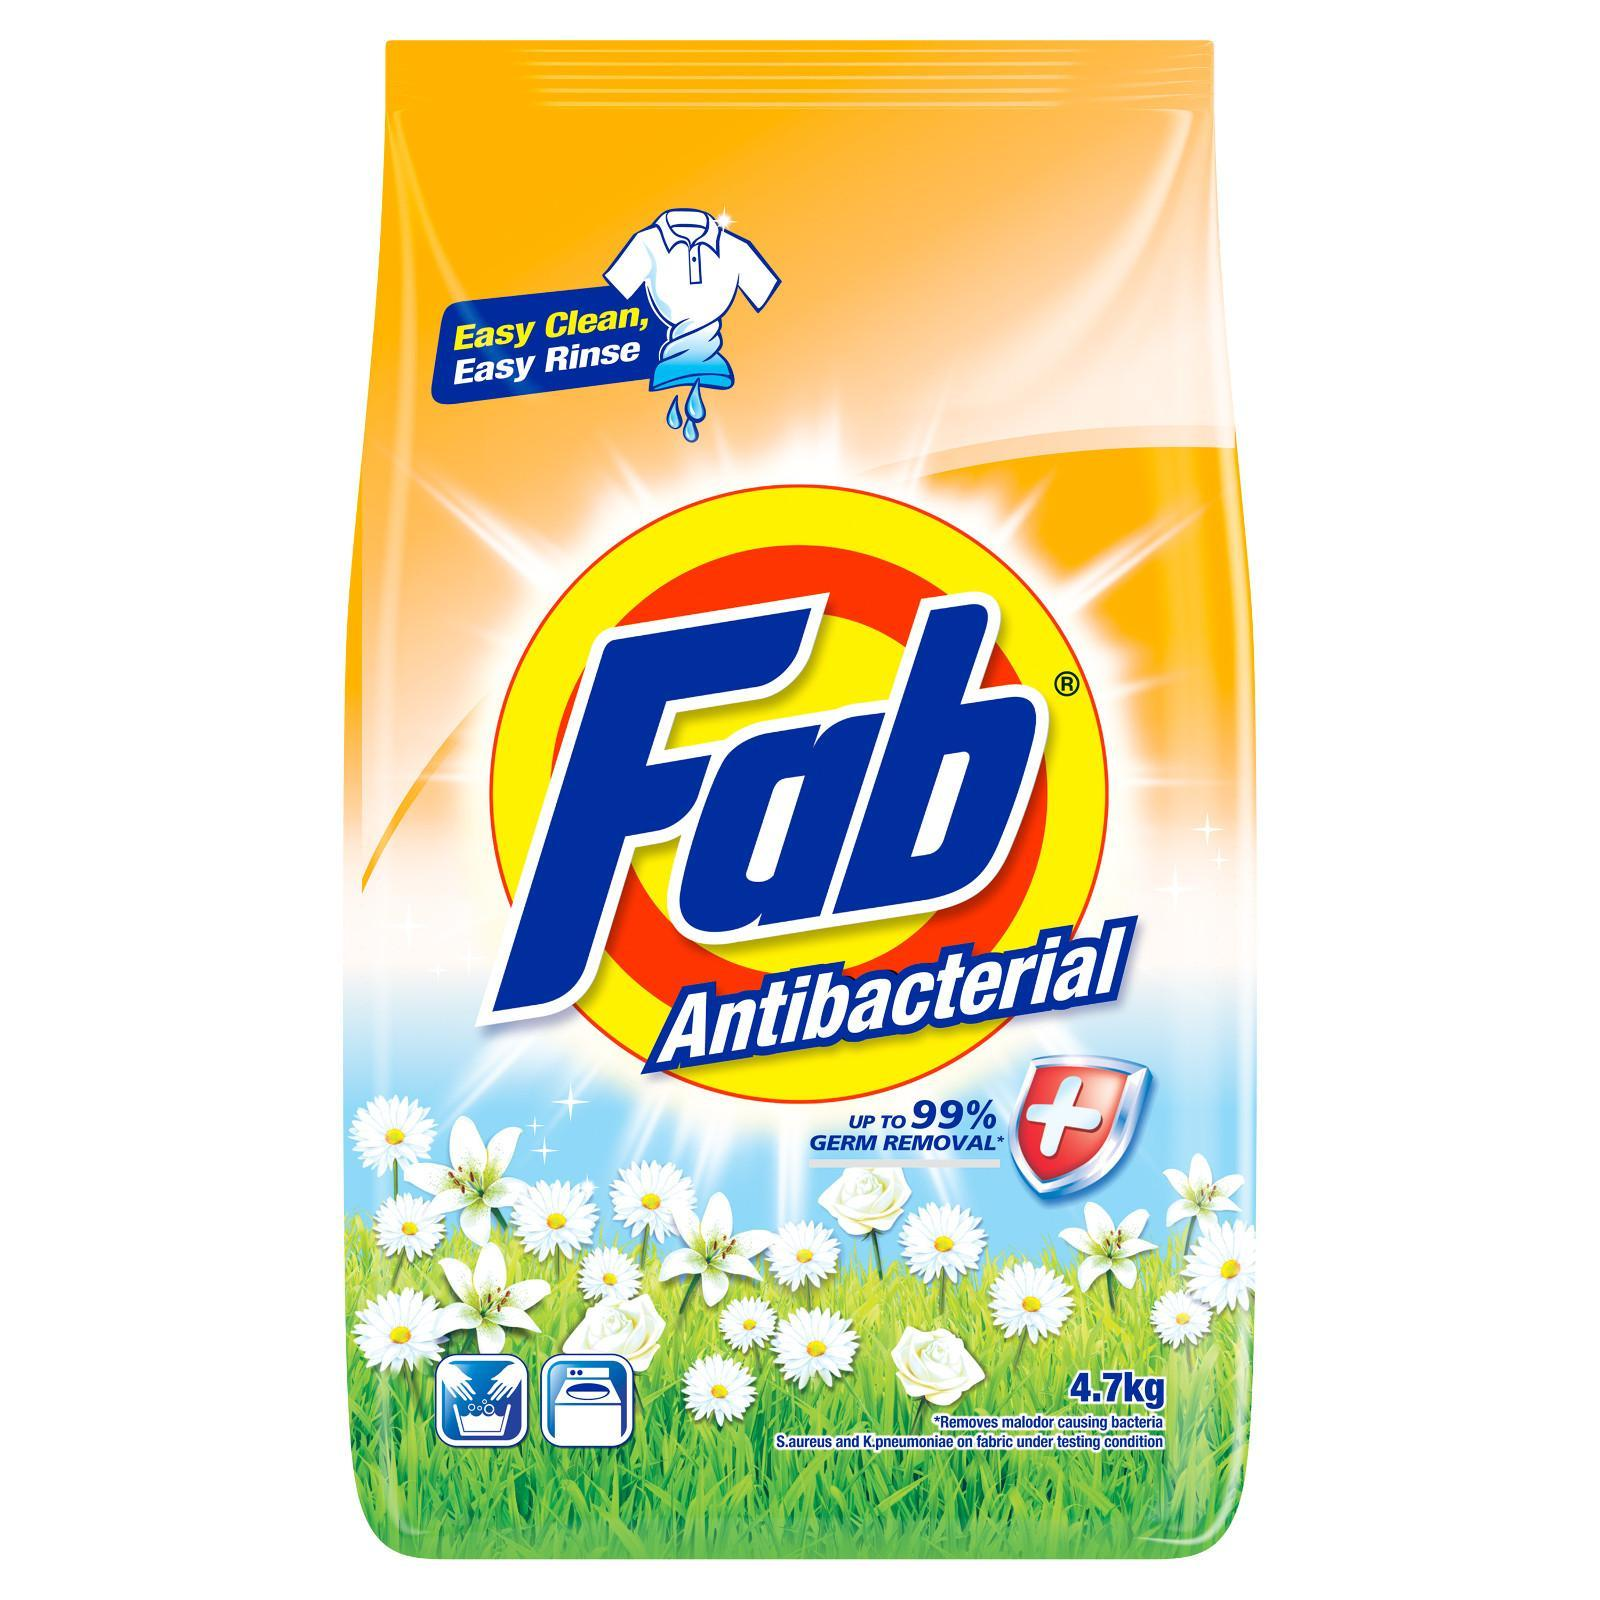 Fab Powder Anti-Bacterial Laundry Detergent